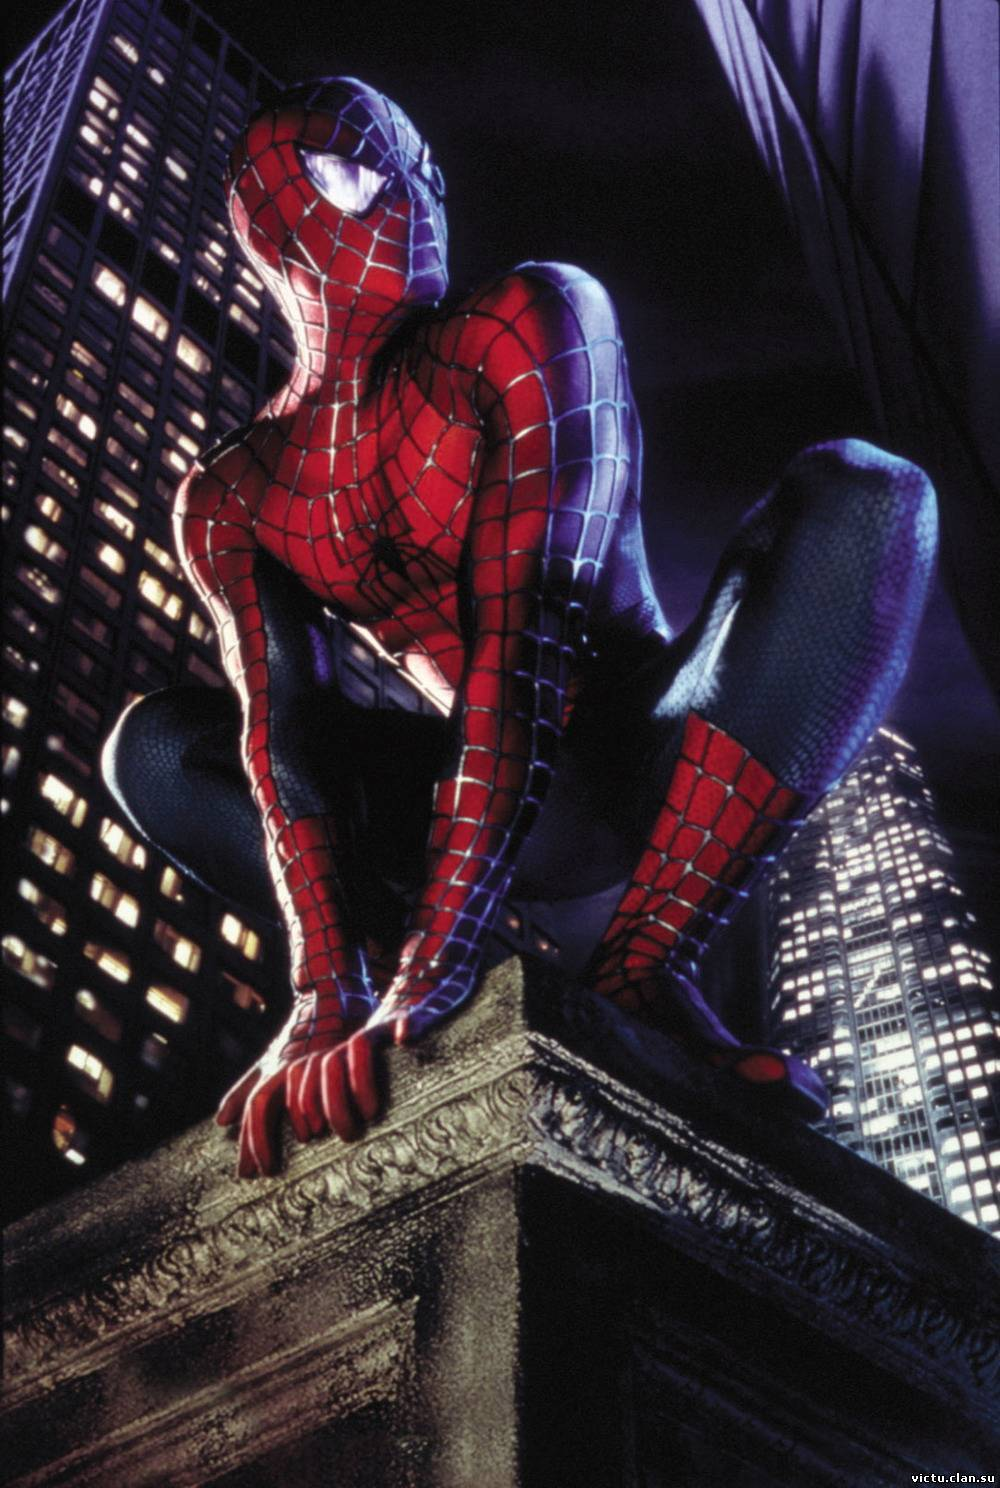 9394 download wallpaper Cinema, Spider Man screensavers and pictures for free